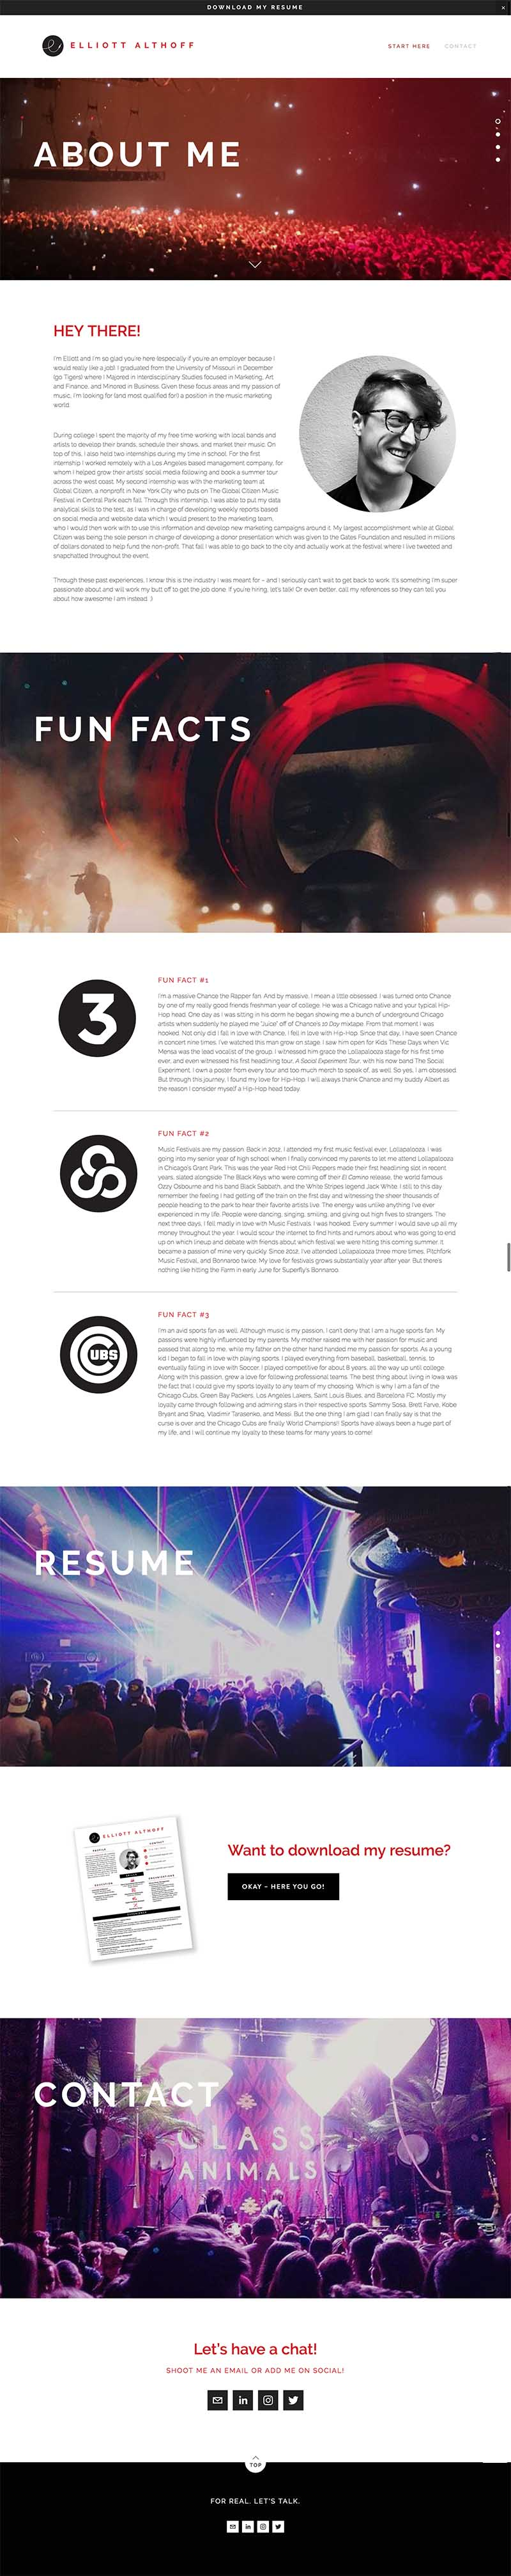 Music industry website design, sleek, modern, bold, black, white and red web design on Squarespace